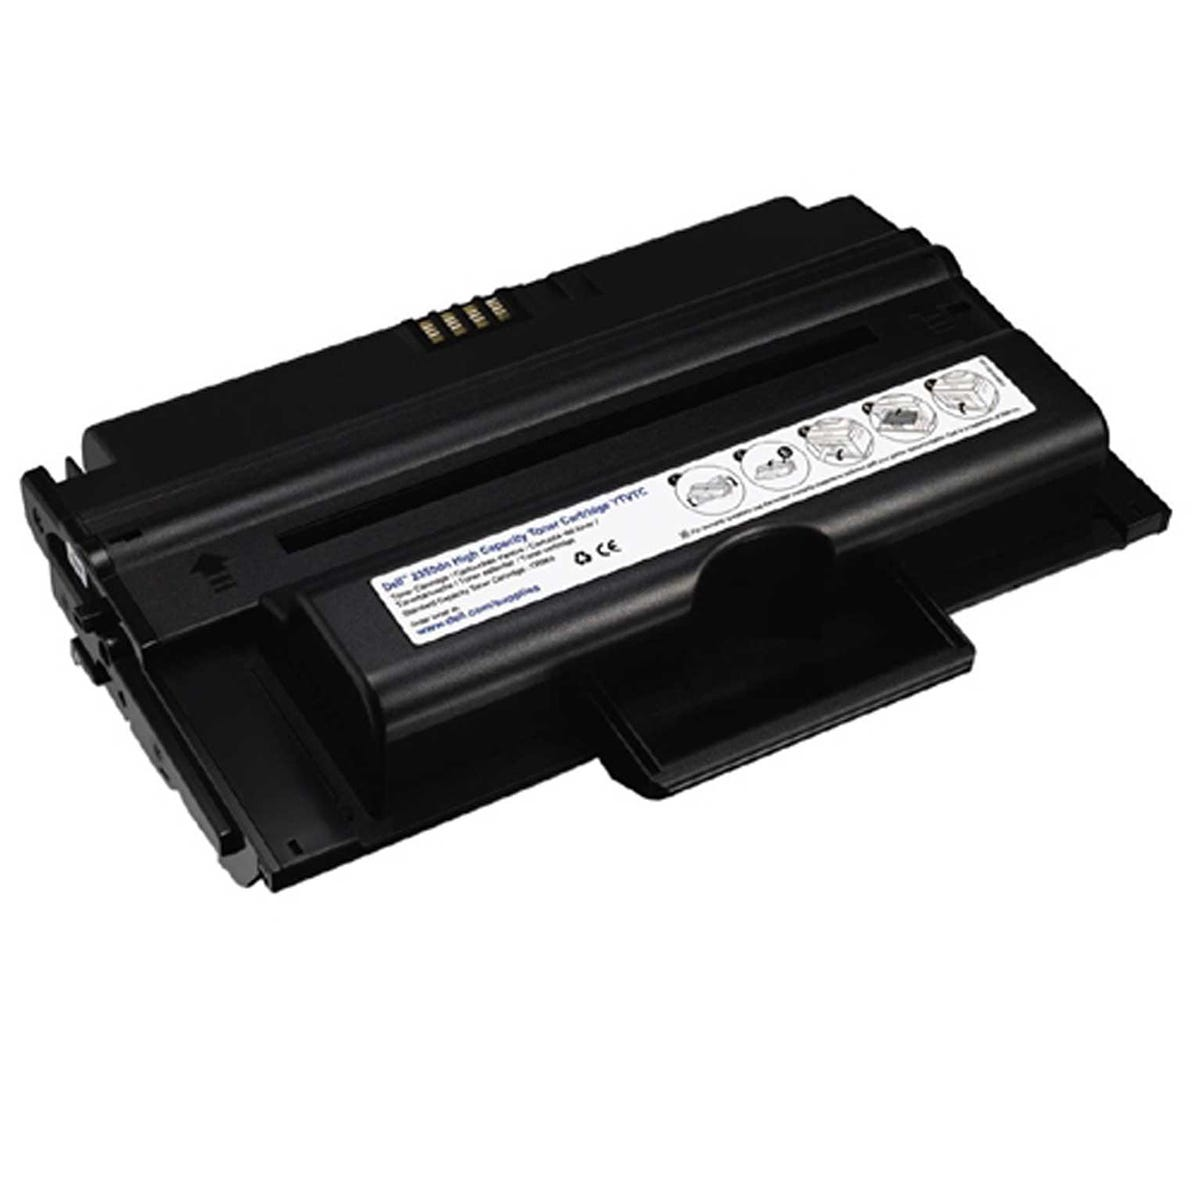 Dell 593-10330 Printer Ink Toner Cartridge Kit, Black.